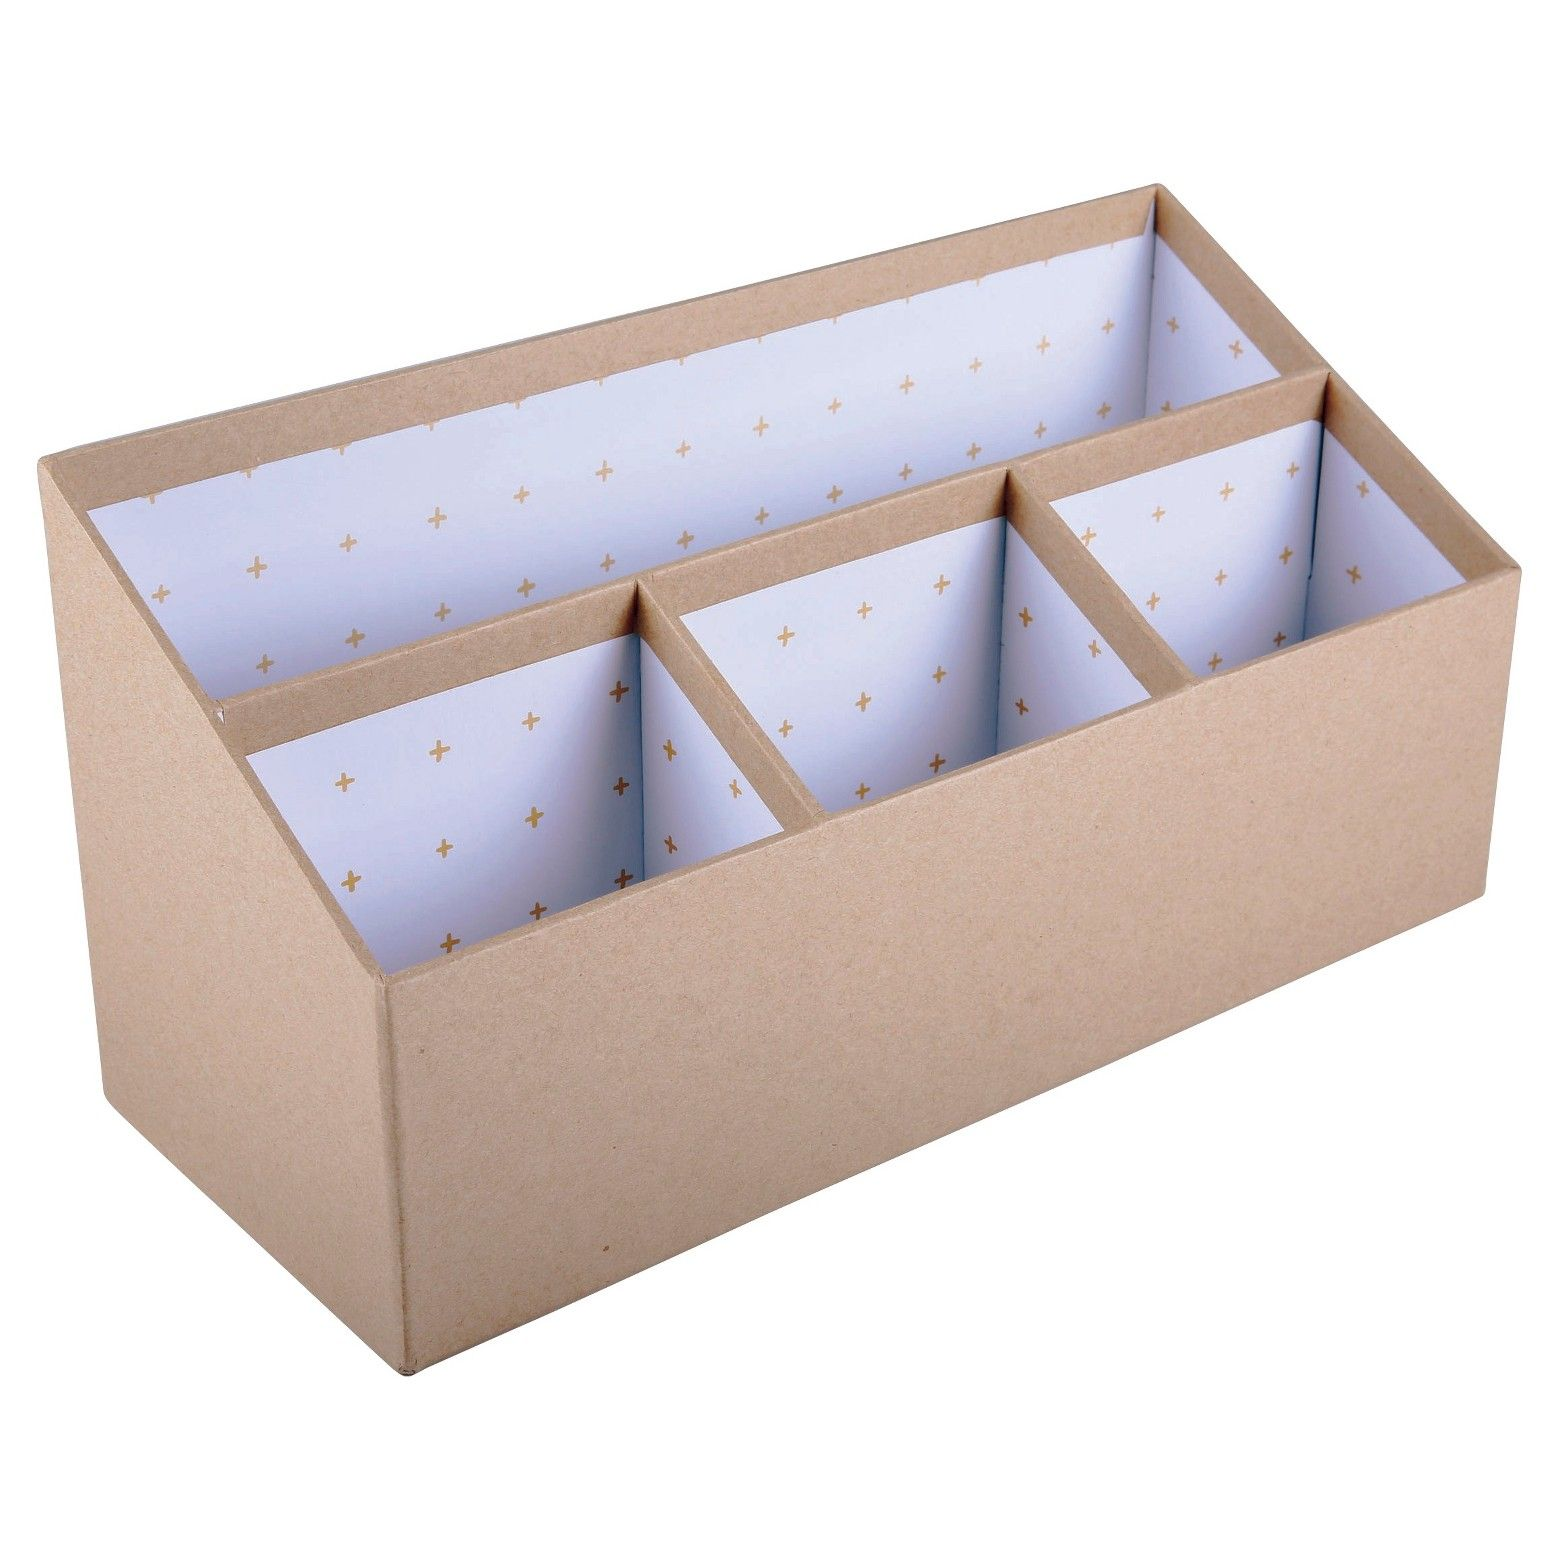 Organize Your Office With Ease And Style This Room Essentials Kraft Desktop Organizer Is A Refine Desktop Organization Desk Organization Diy Desk Makeover Diy